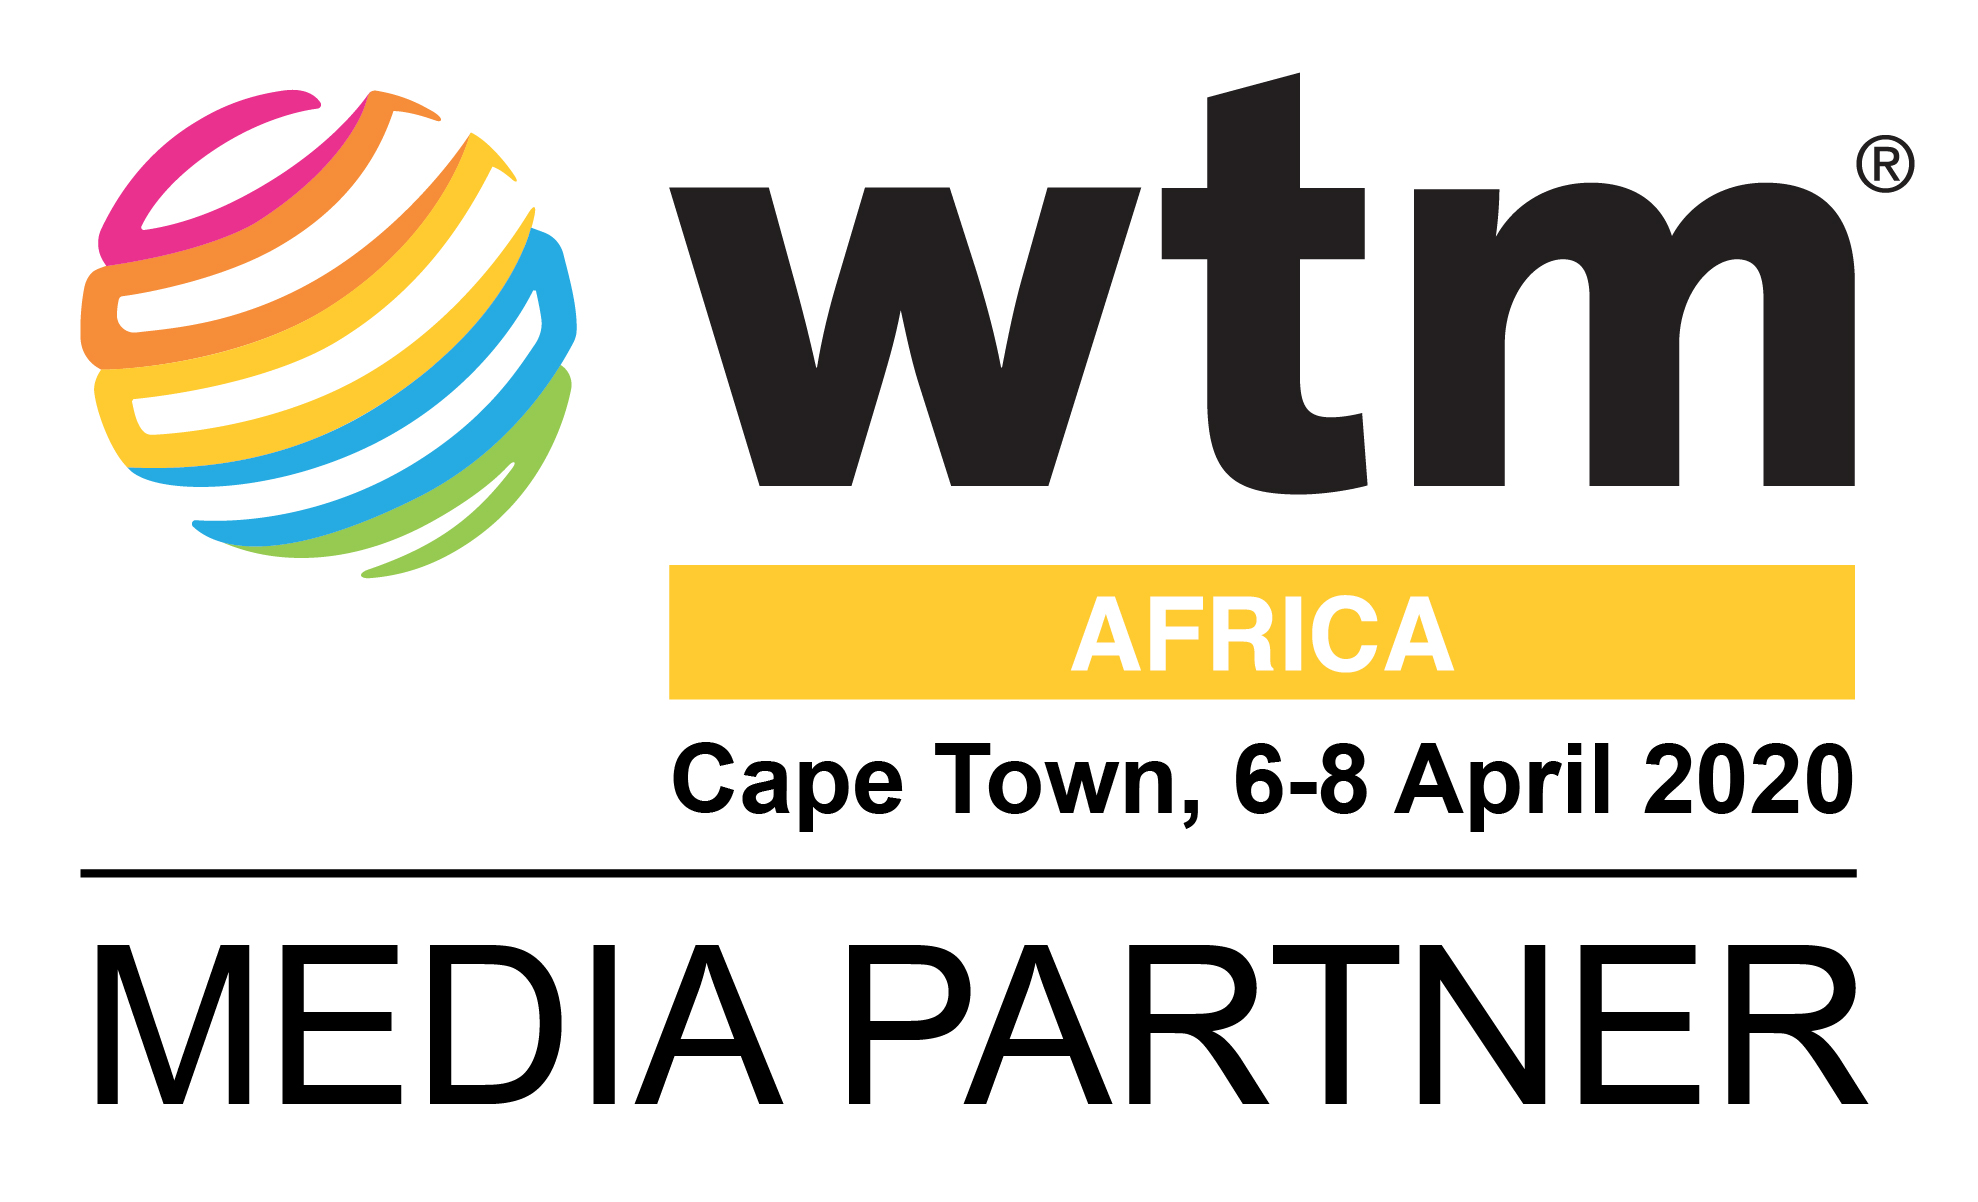 ATCNews is once again a Gold Media Partner of World Travel Market Africa